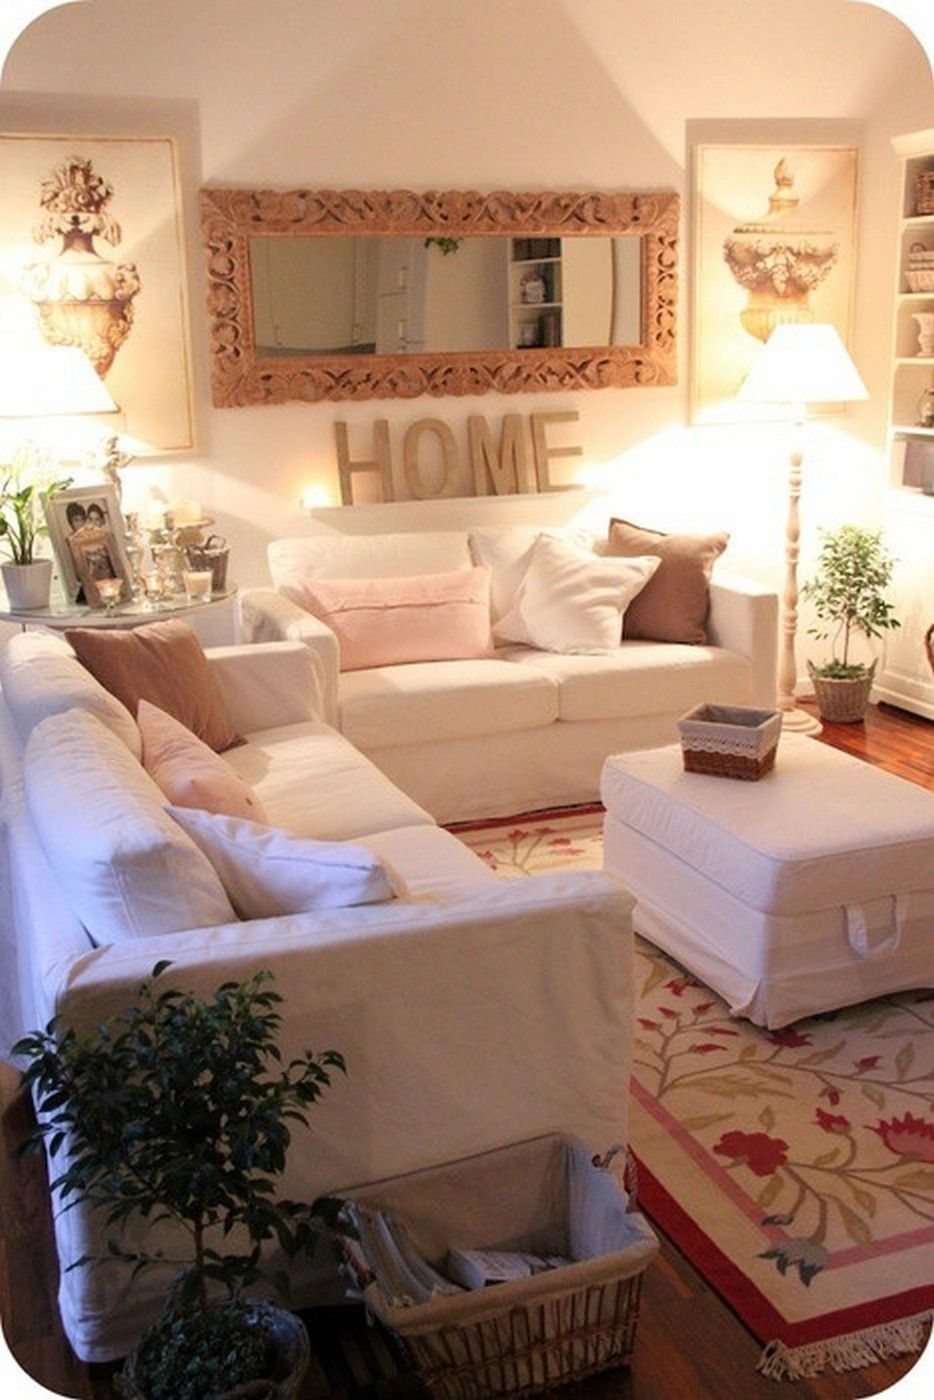 Living Room Ideas For An Apartment 23 Creative & Genius Small Apartment Decorating On A Budget